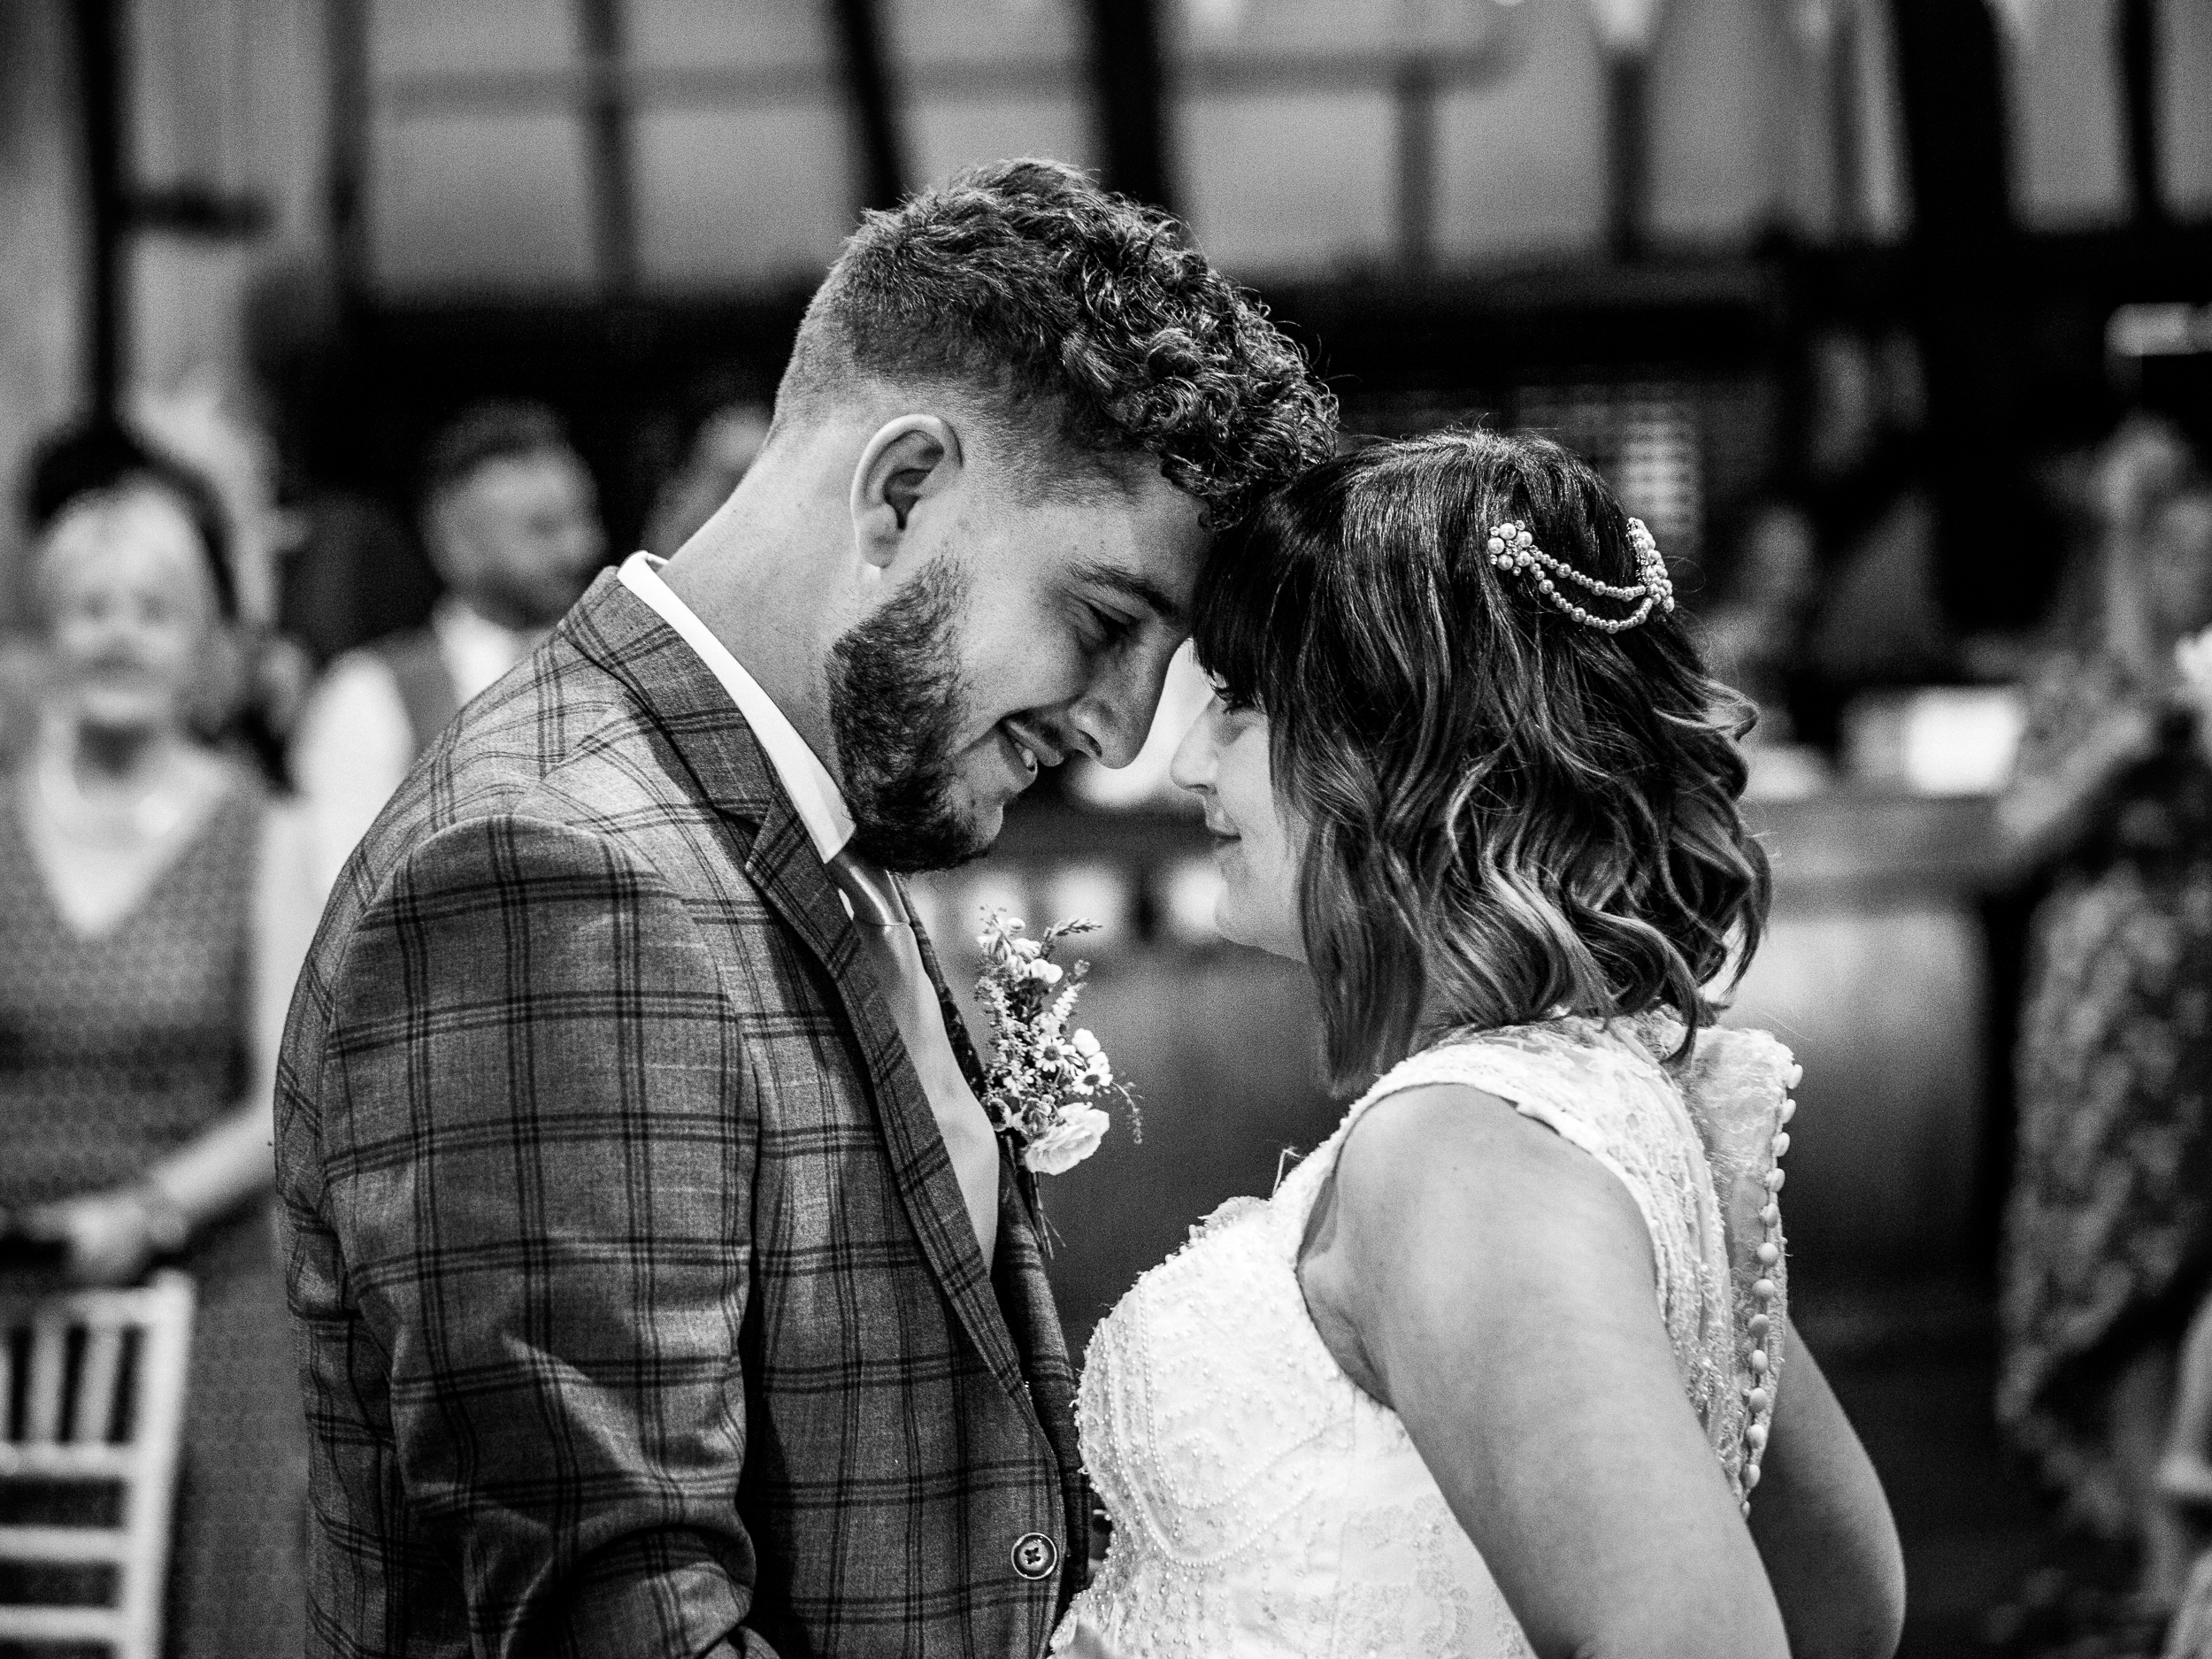 Bedfordshire wedding at the Barns hotel, captured by Richard Puncheon Photography